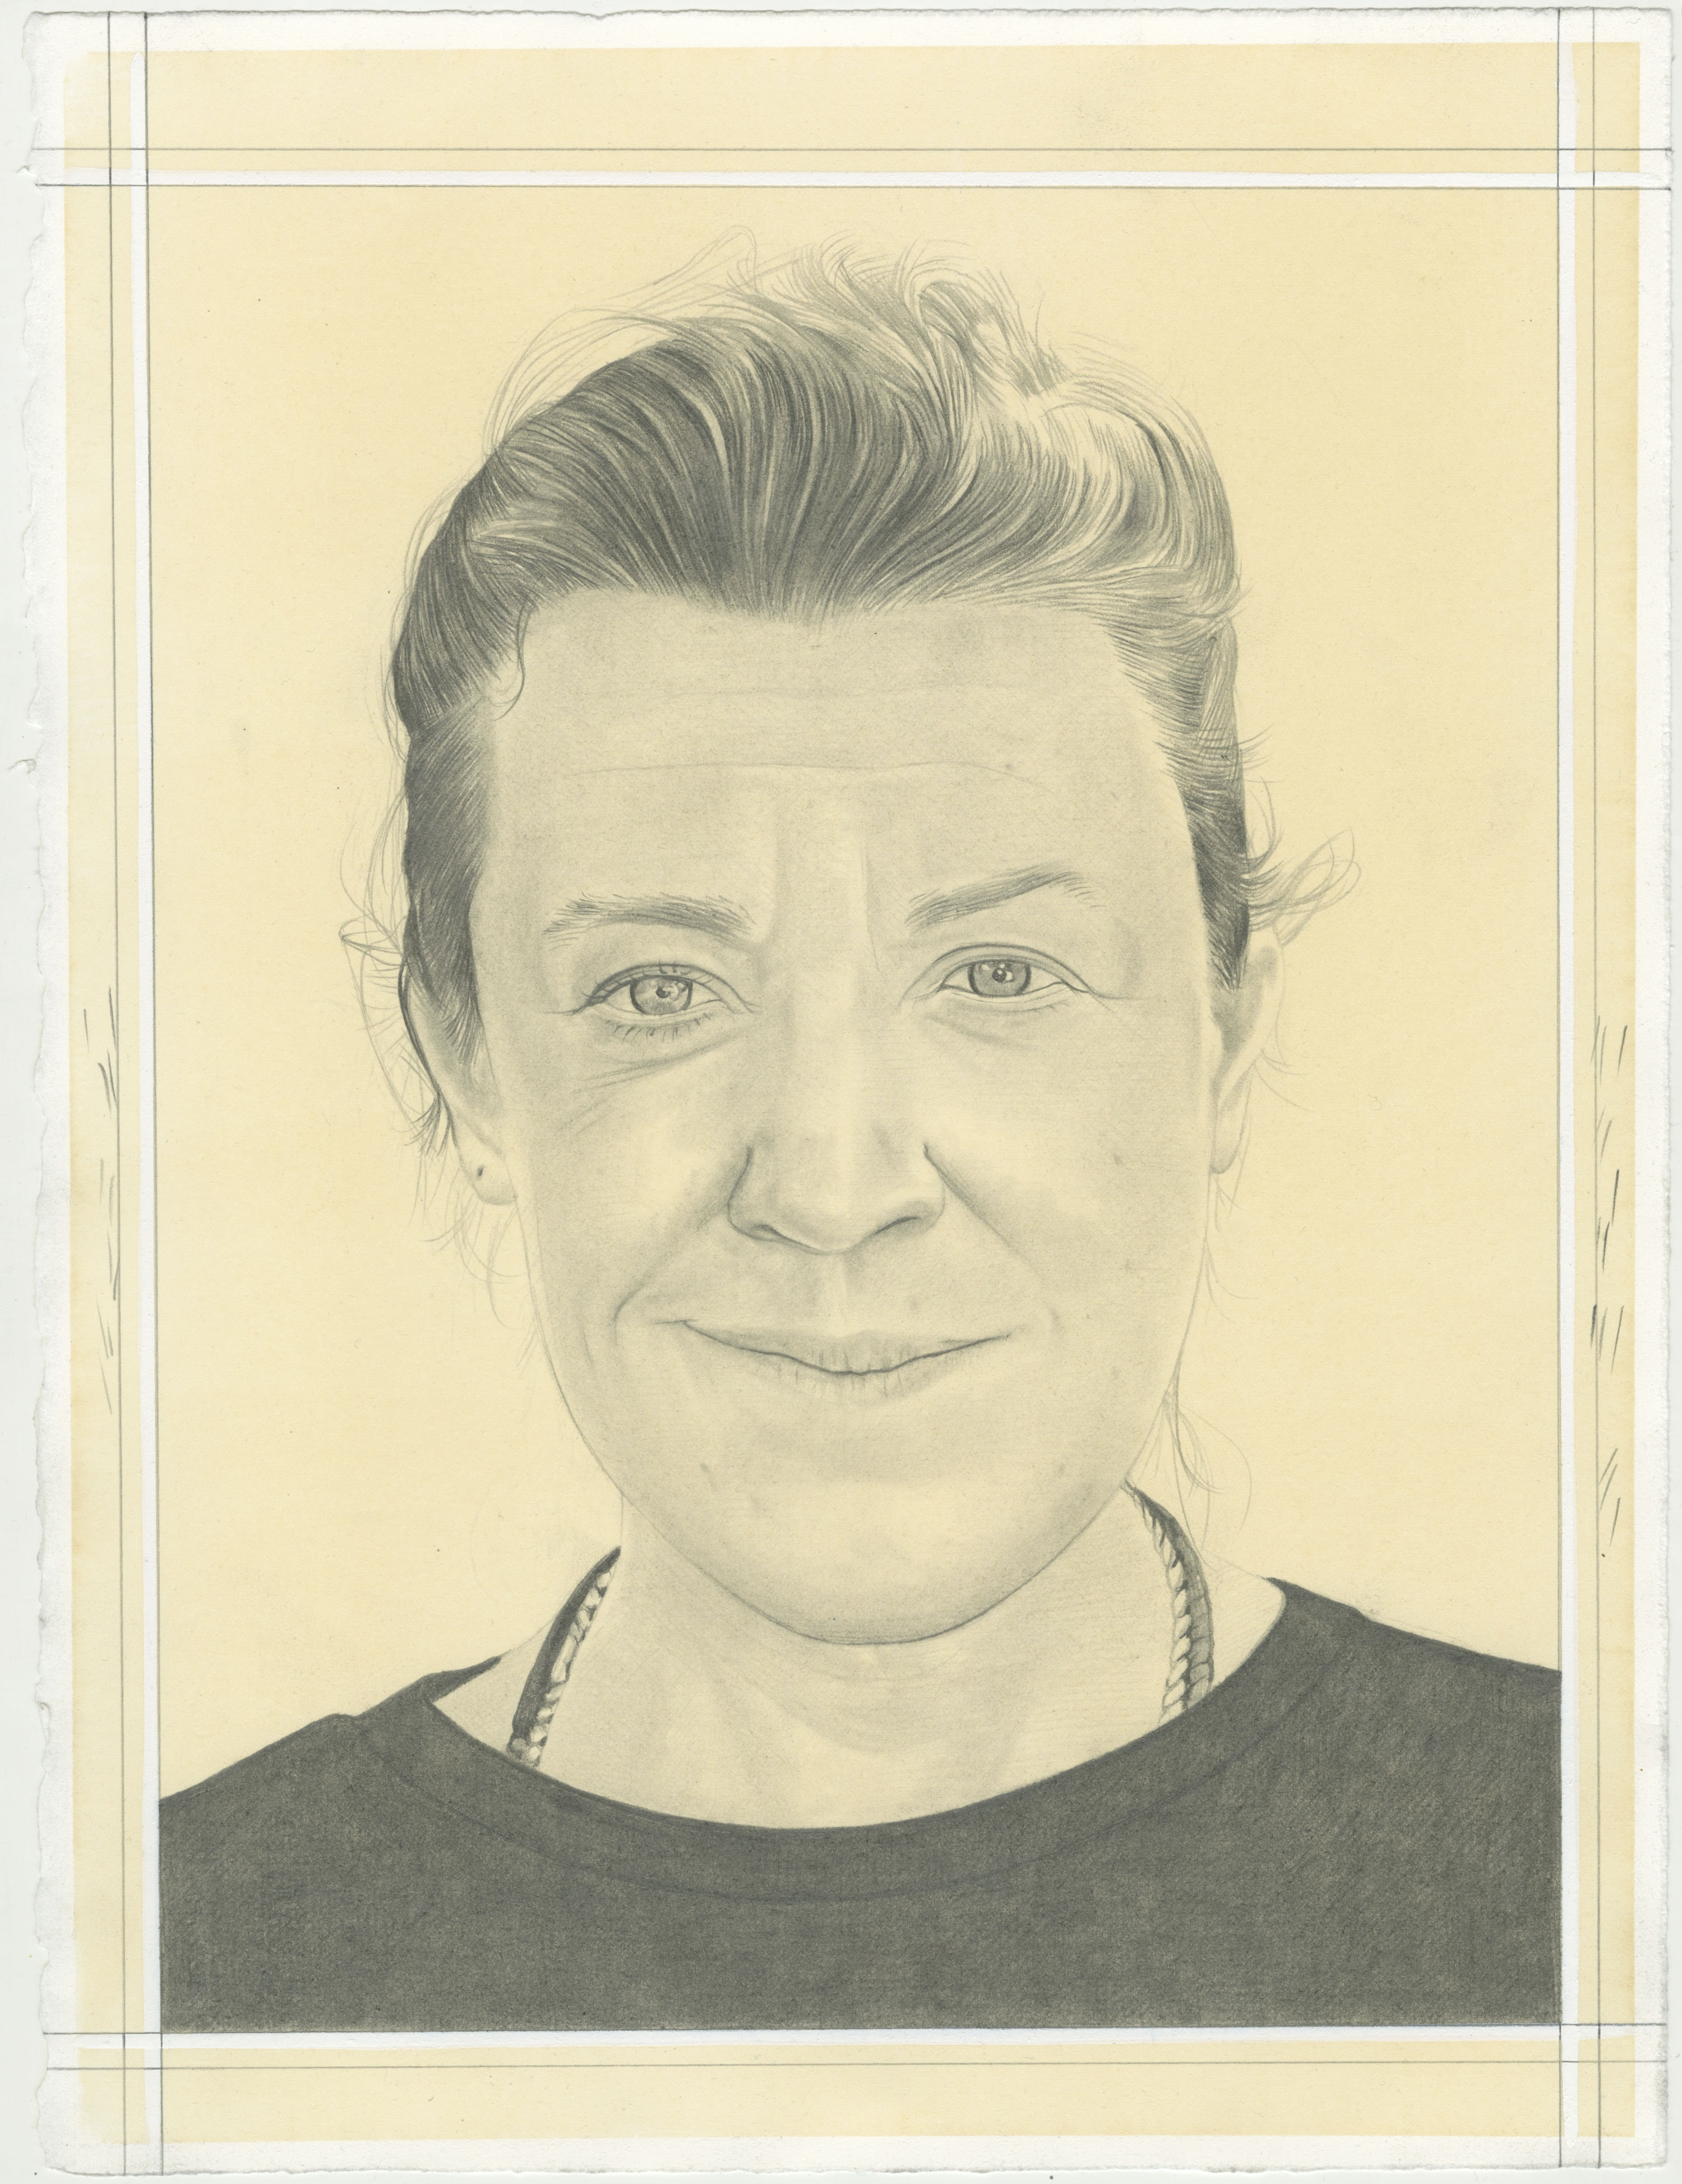 Portrait of EJ Hauser, pencil on paper by Phong H. Bui.